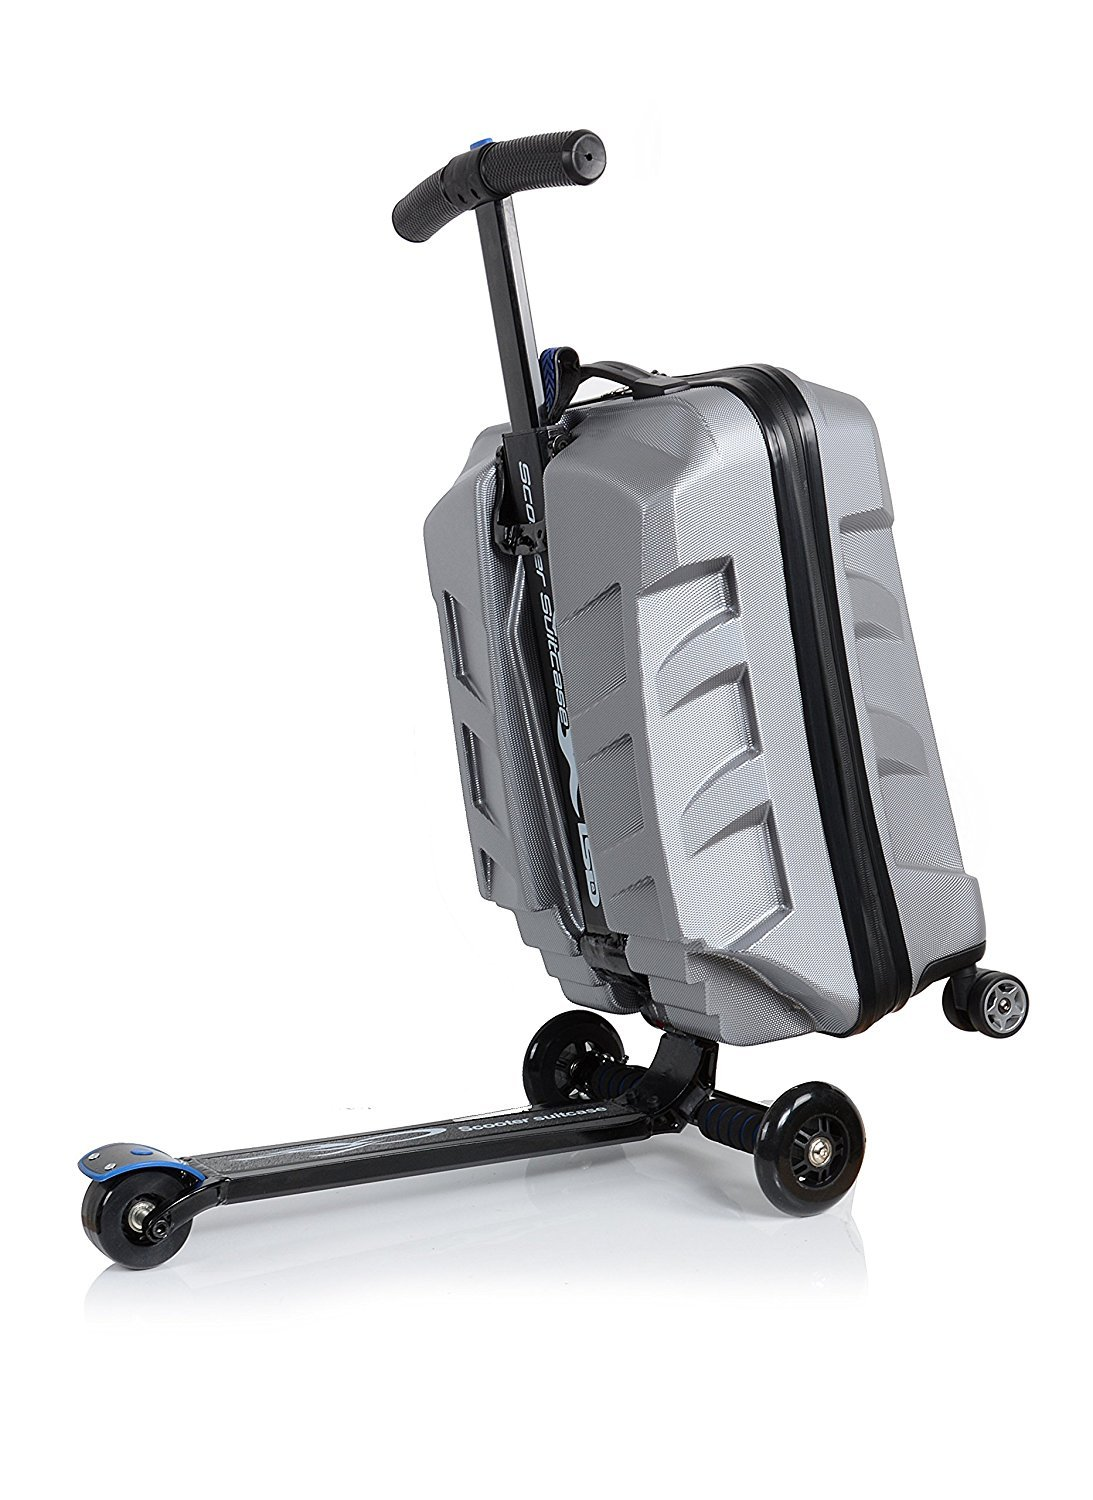 Sunshine baby 20 inch foldable scooter suitcase with multi-functional suitcase (gray)